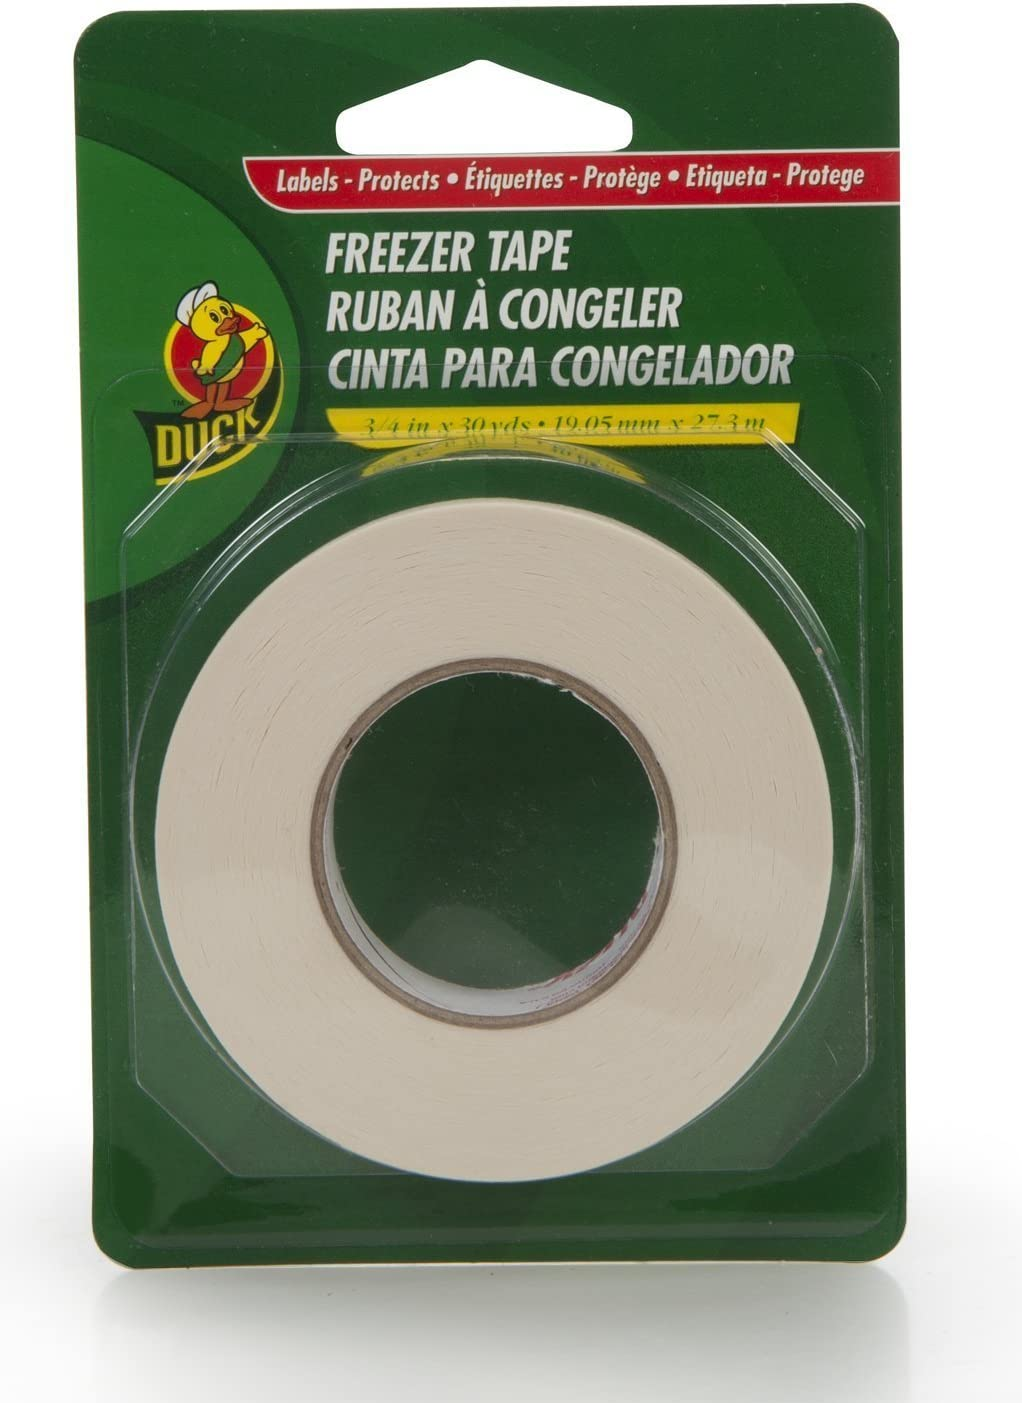 Duck Brand Single Roll Write-On Tape New sales Freezer PACK New Orleans Mall 3 White